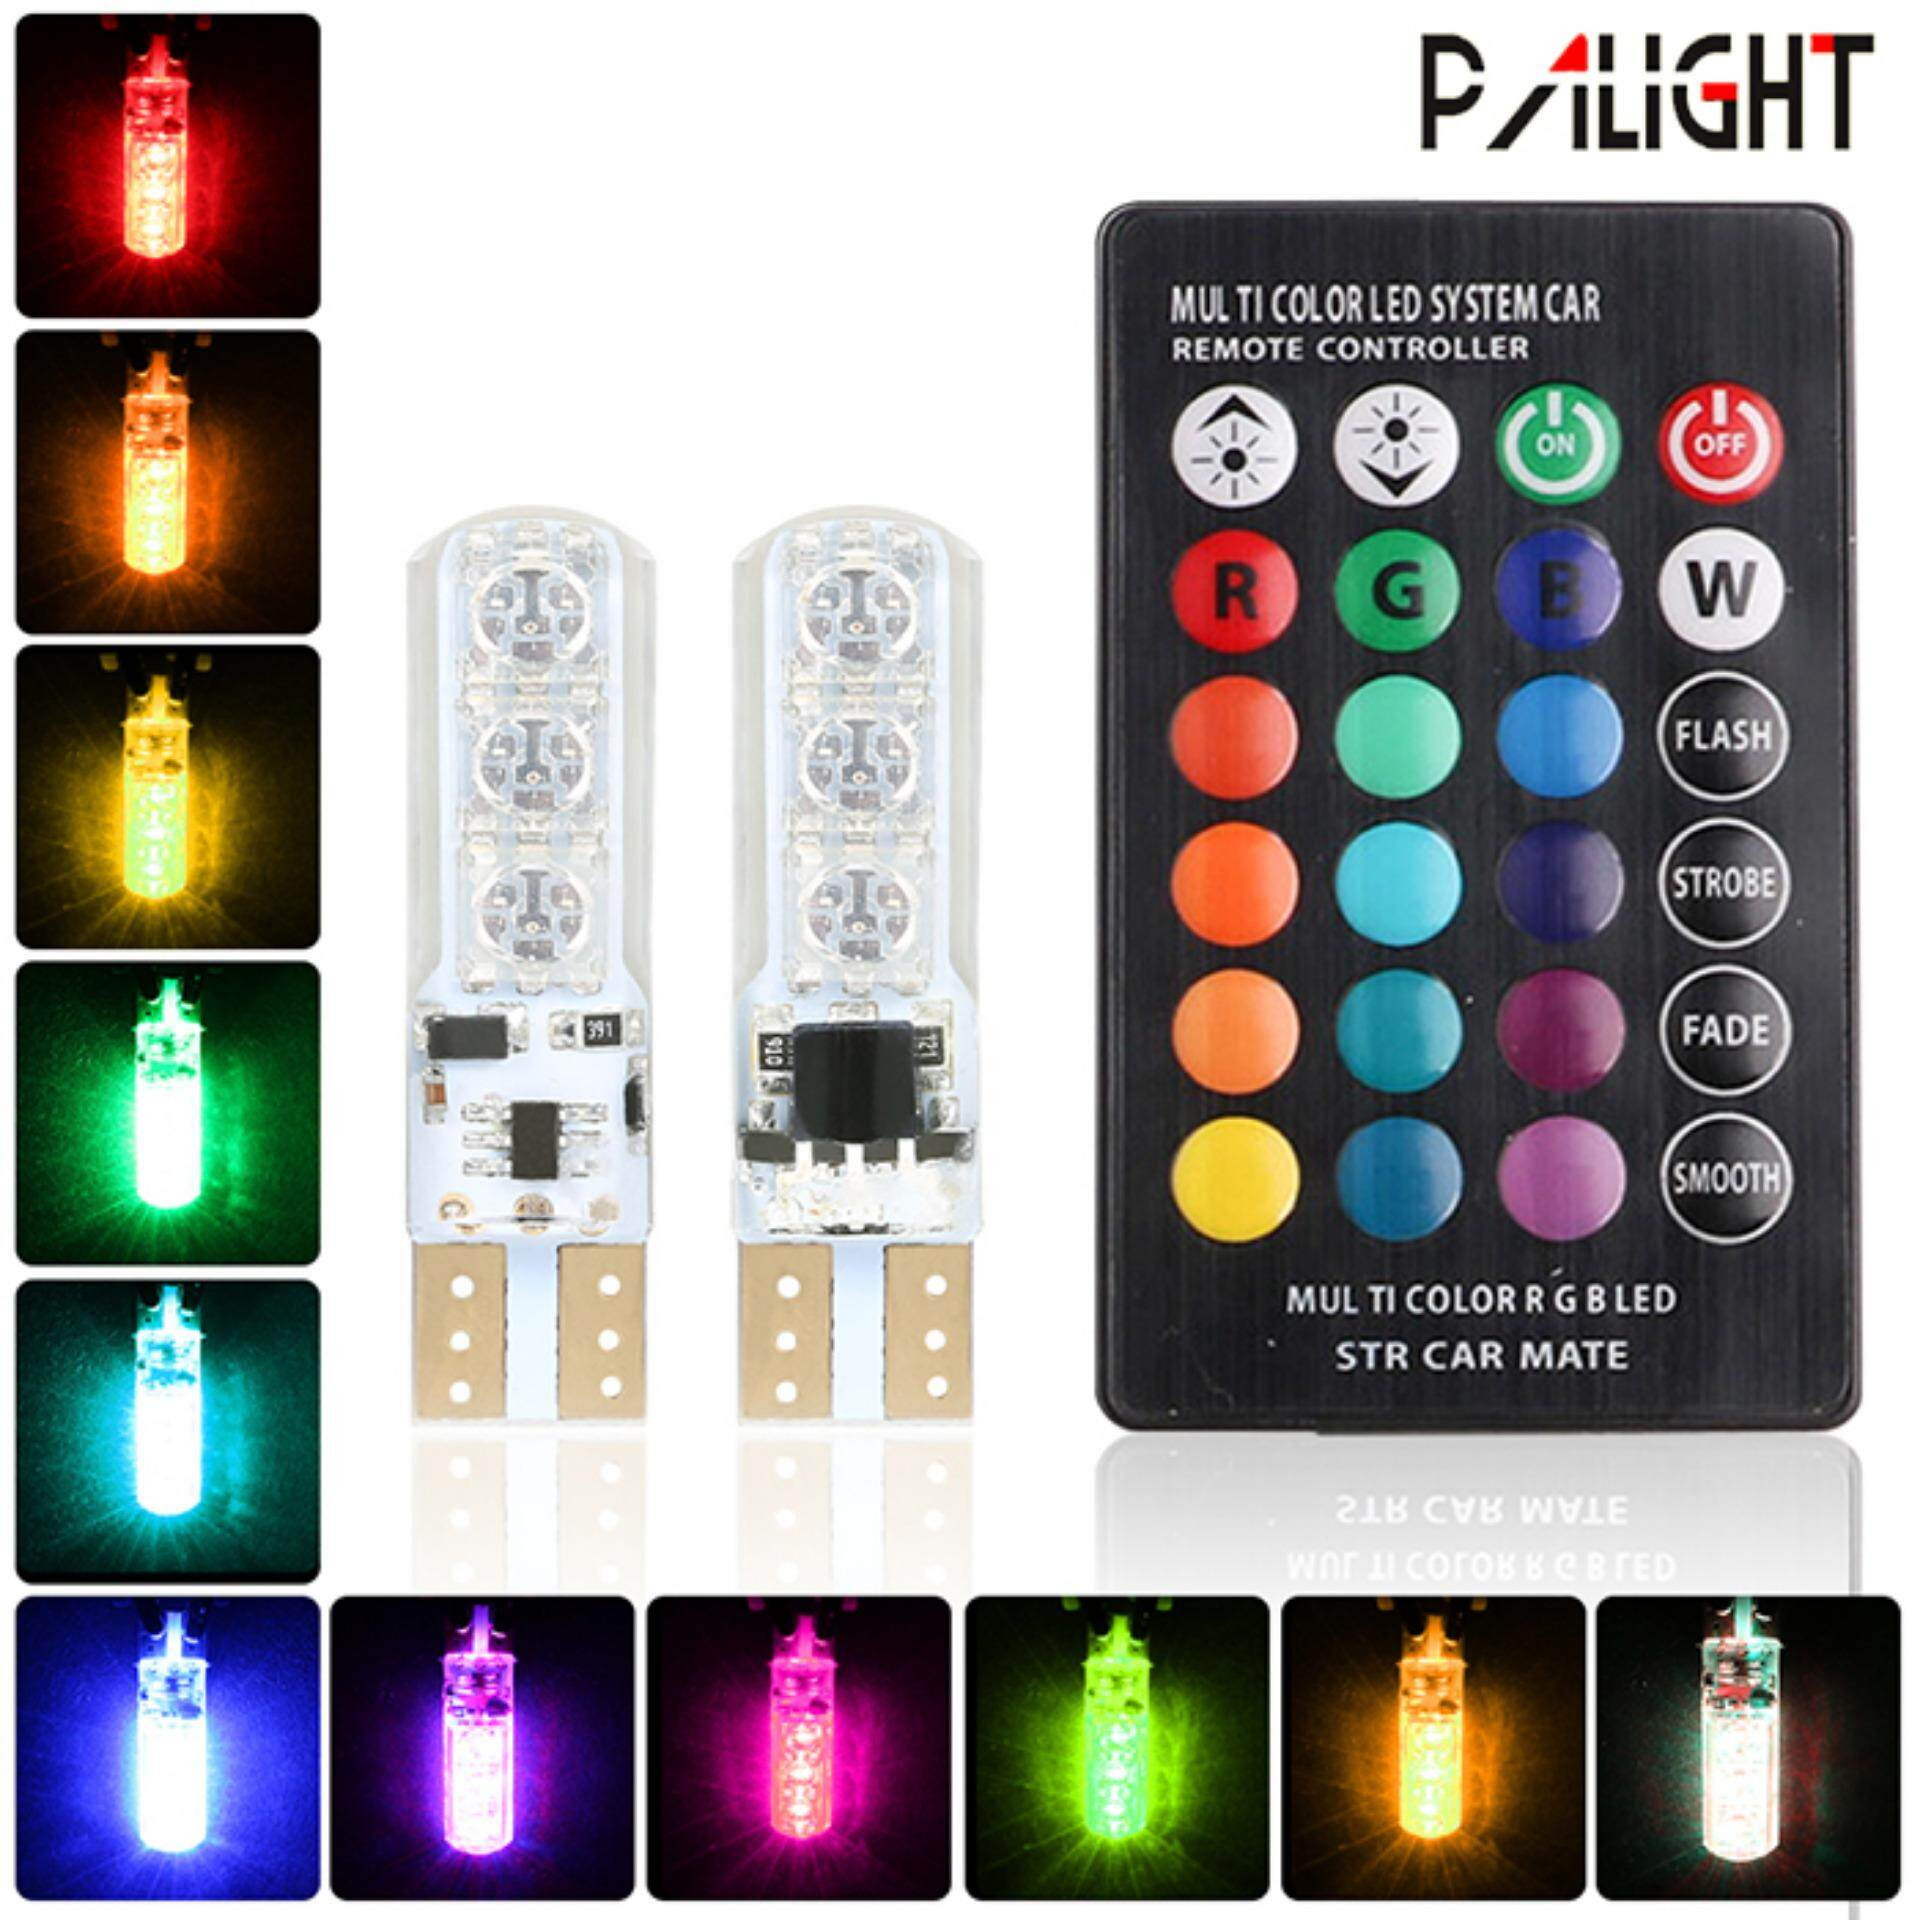 PAlight 1 Pair RGB Car Decoration Light T10 5050 Remote Control 12V 6 SMD Light Bulbs